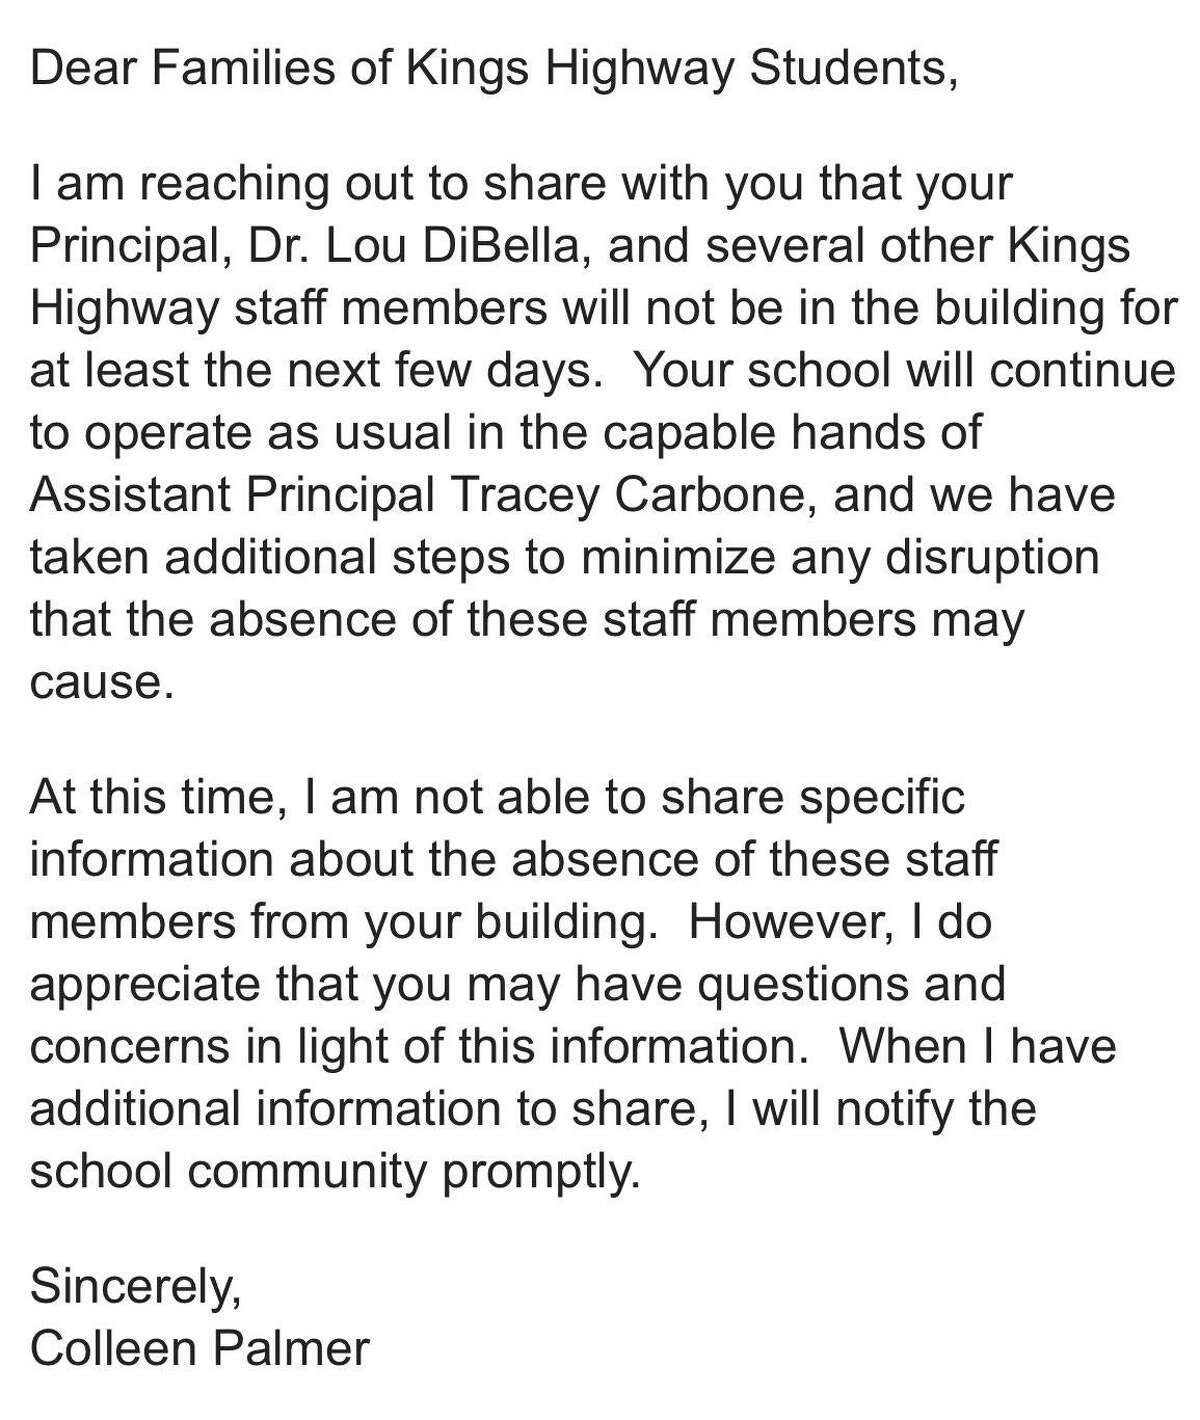 Westport Superintendent Colleen Palmer sent an email to Kings Highway Elementary School families around 2:30pm on Jan. 28 regarding the absence of Principal Dr. Lou DiBella and several other Kings Highway staff members.